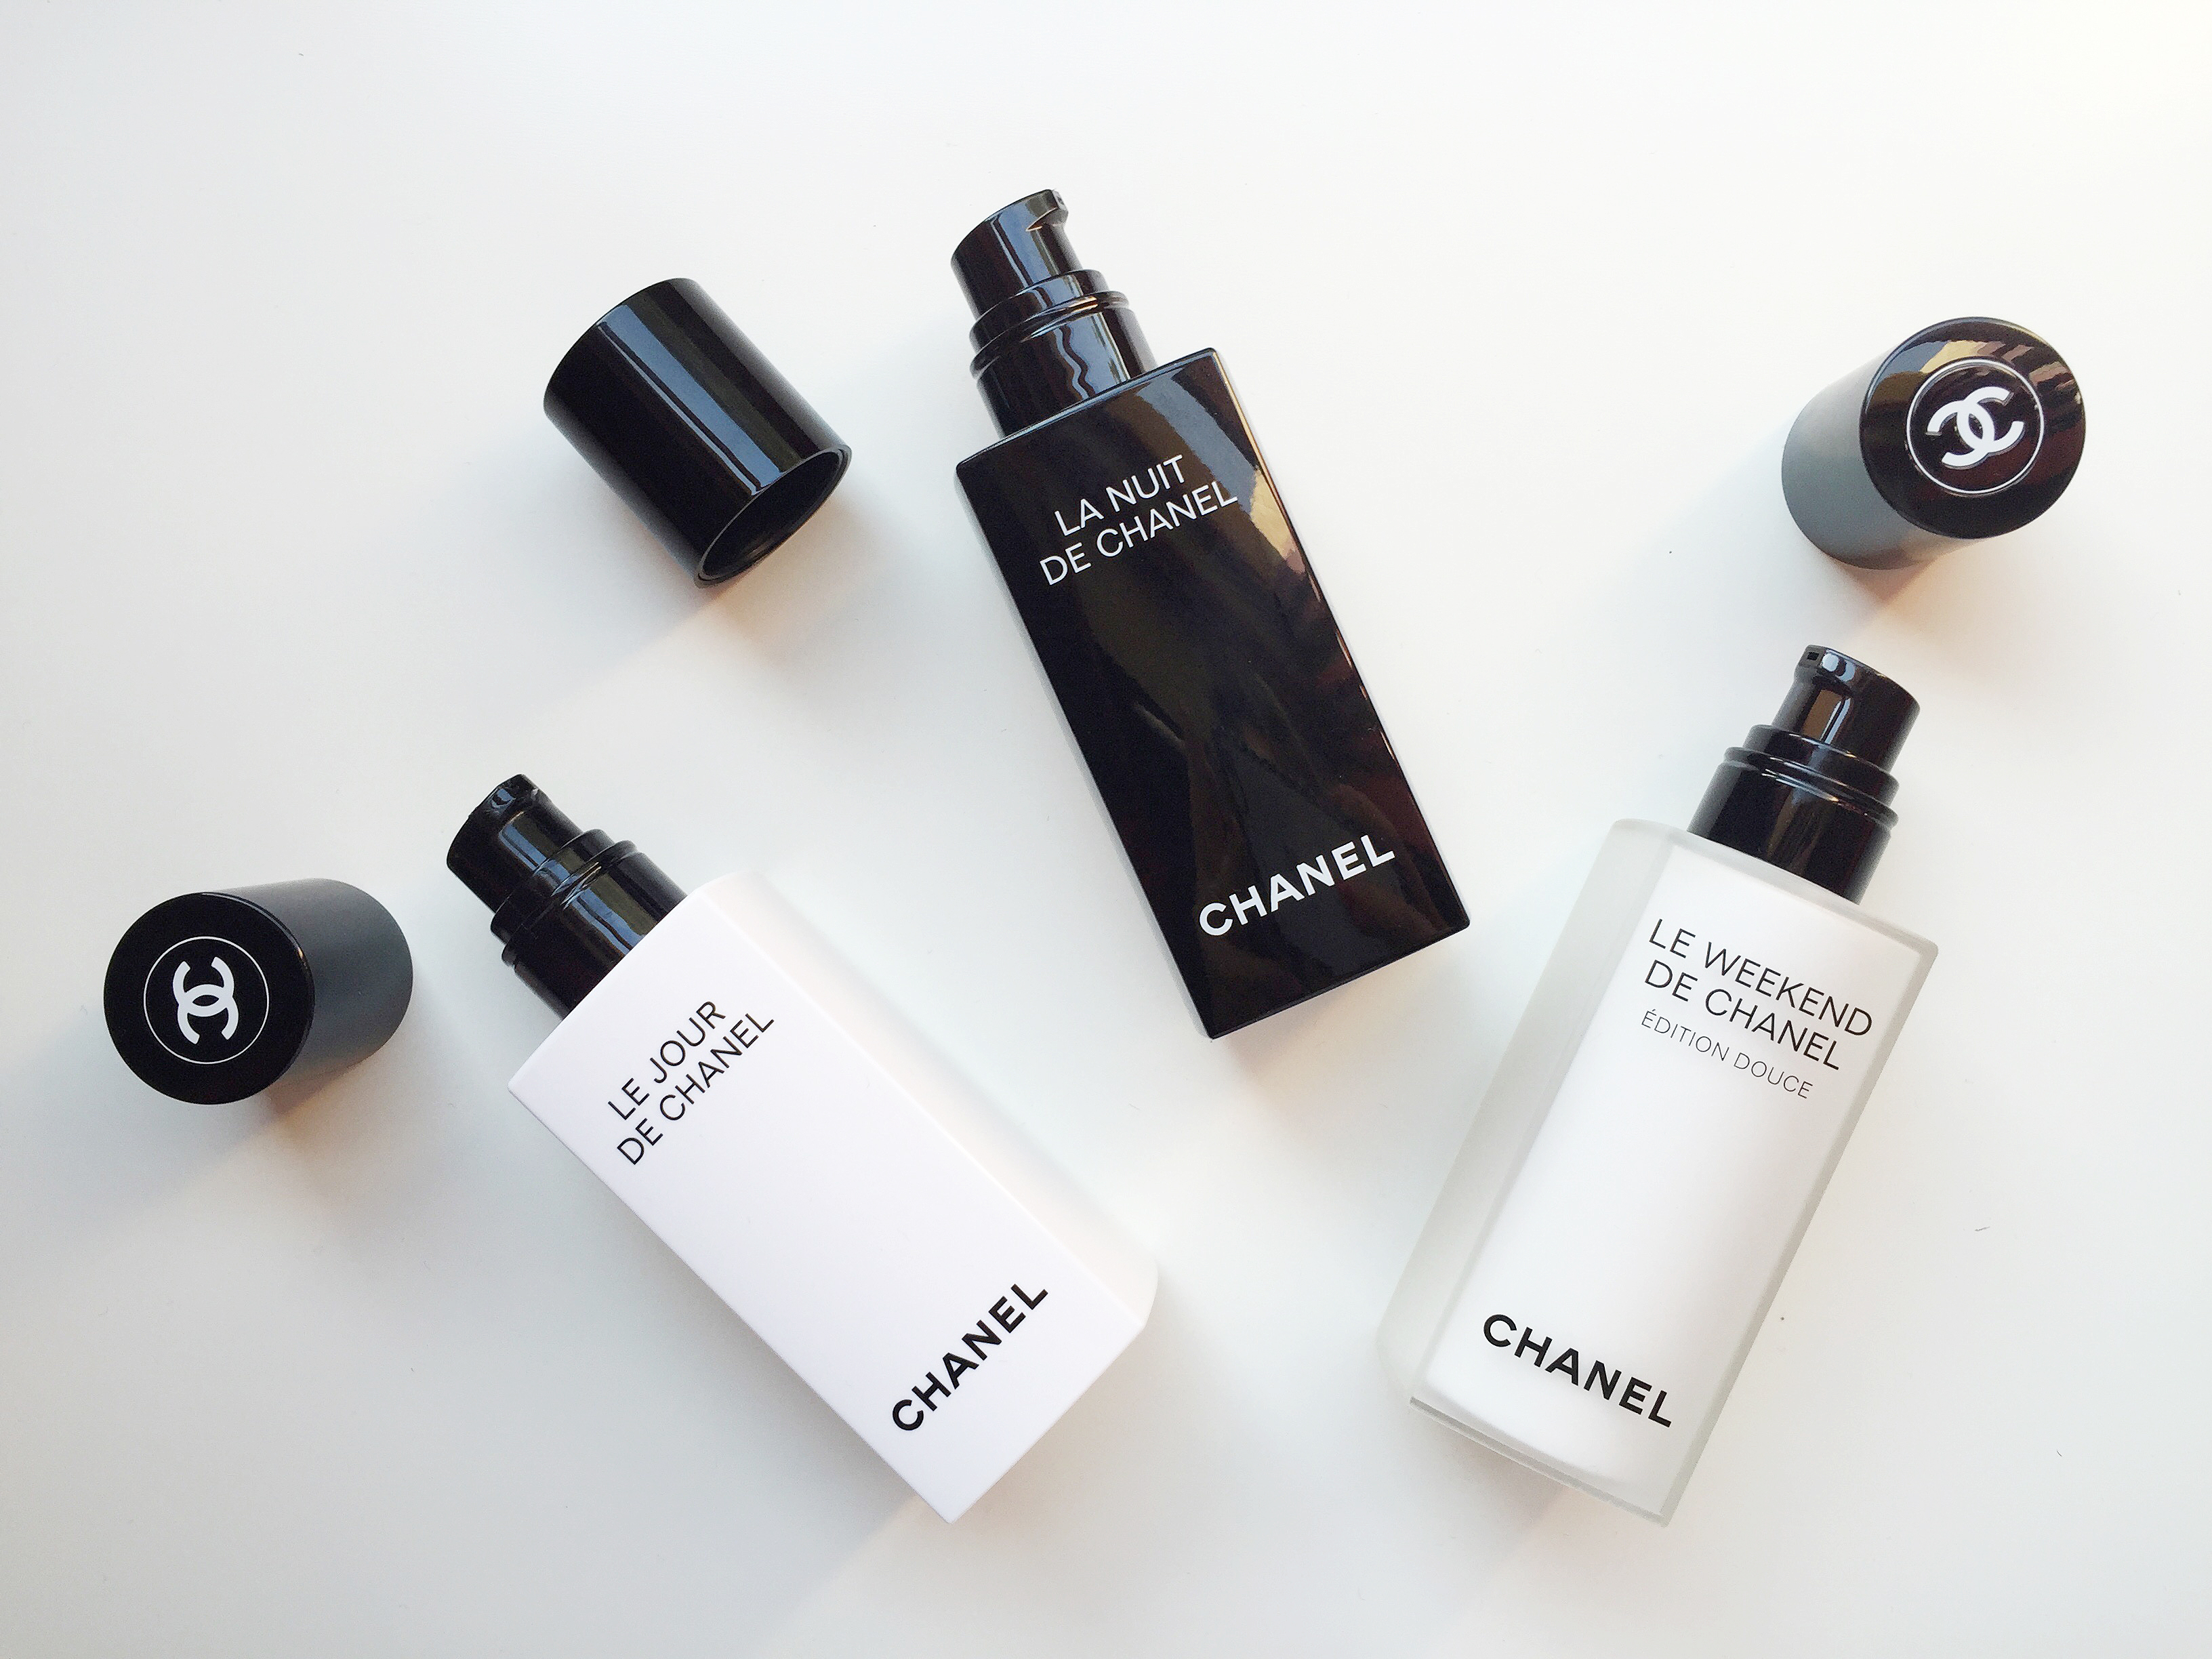 Chanel beauty routine.